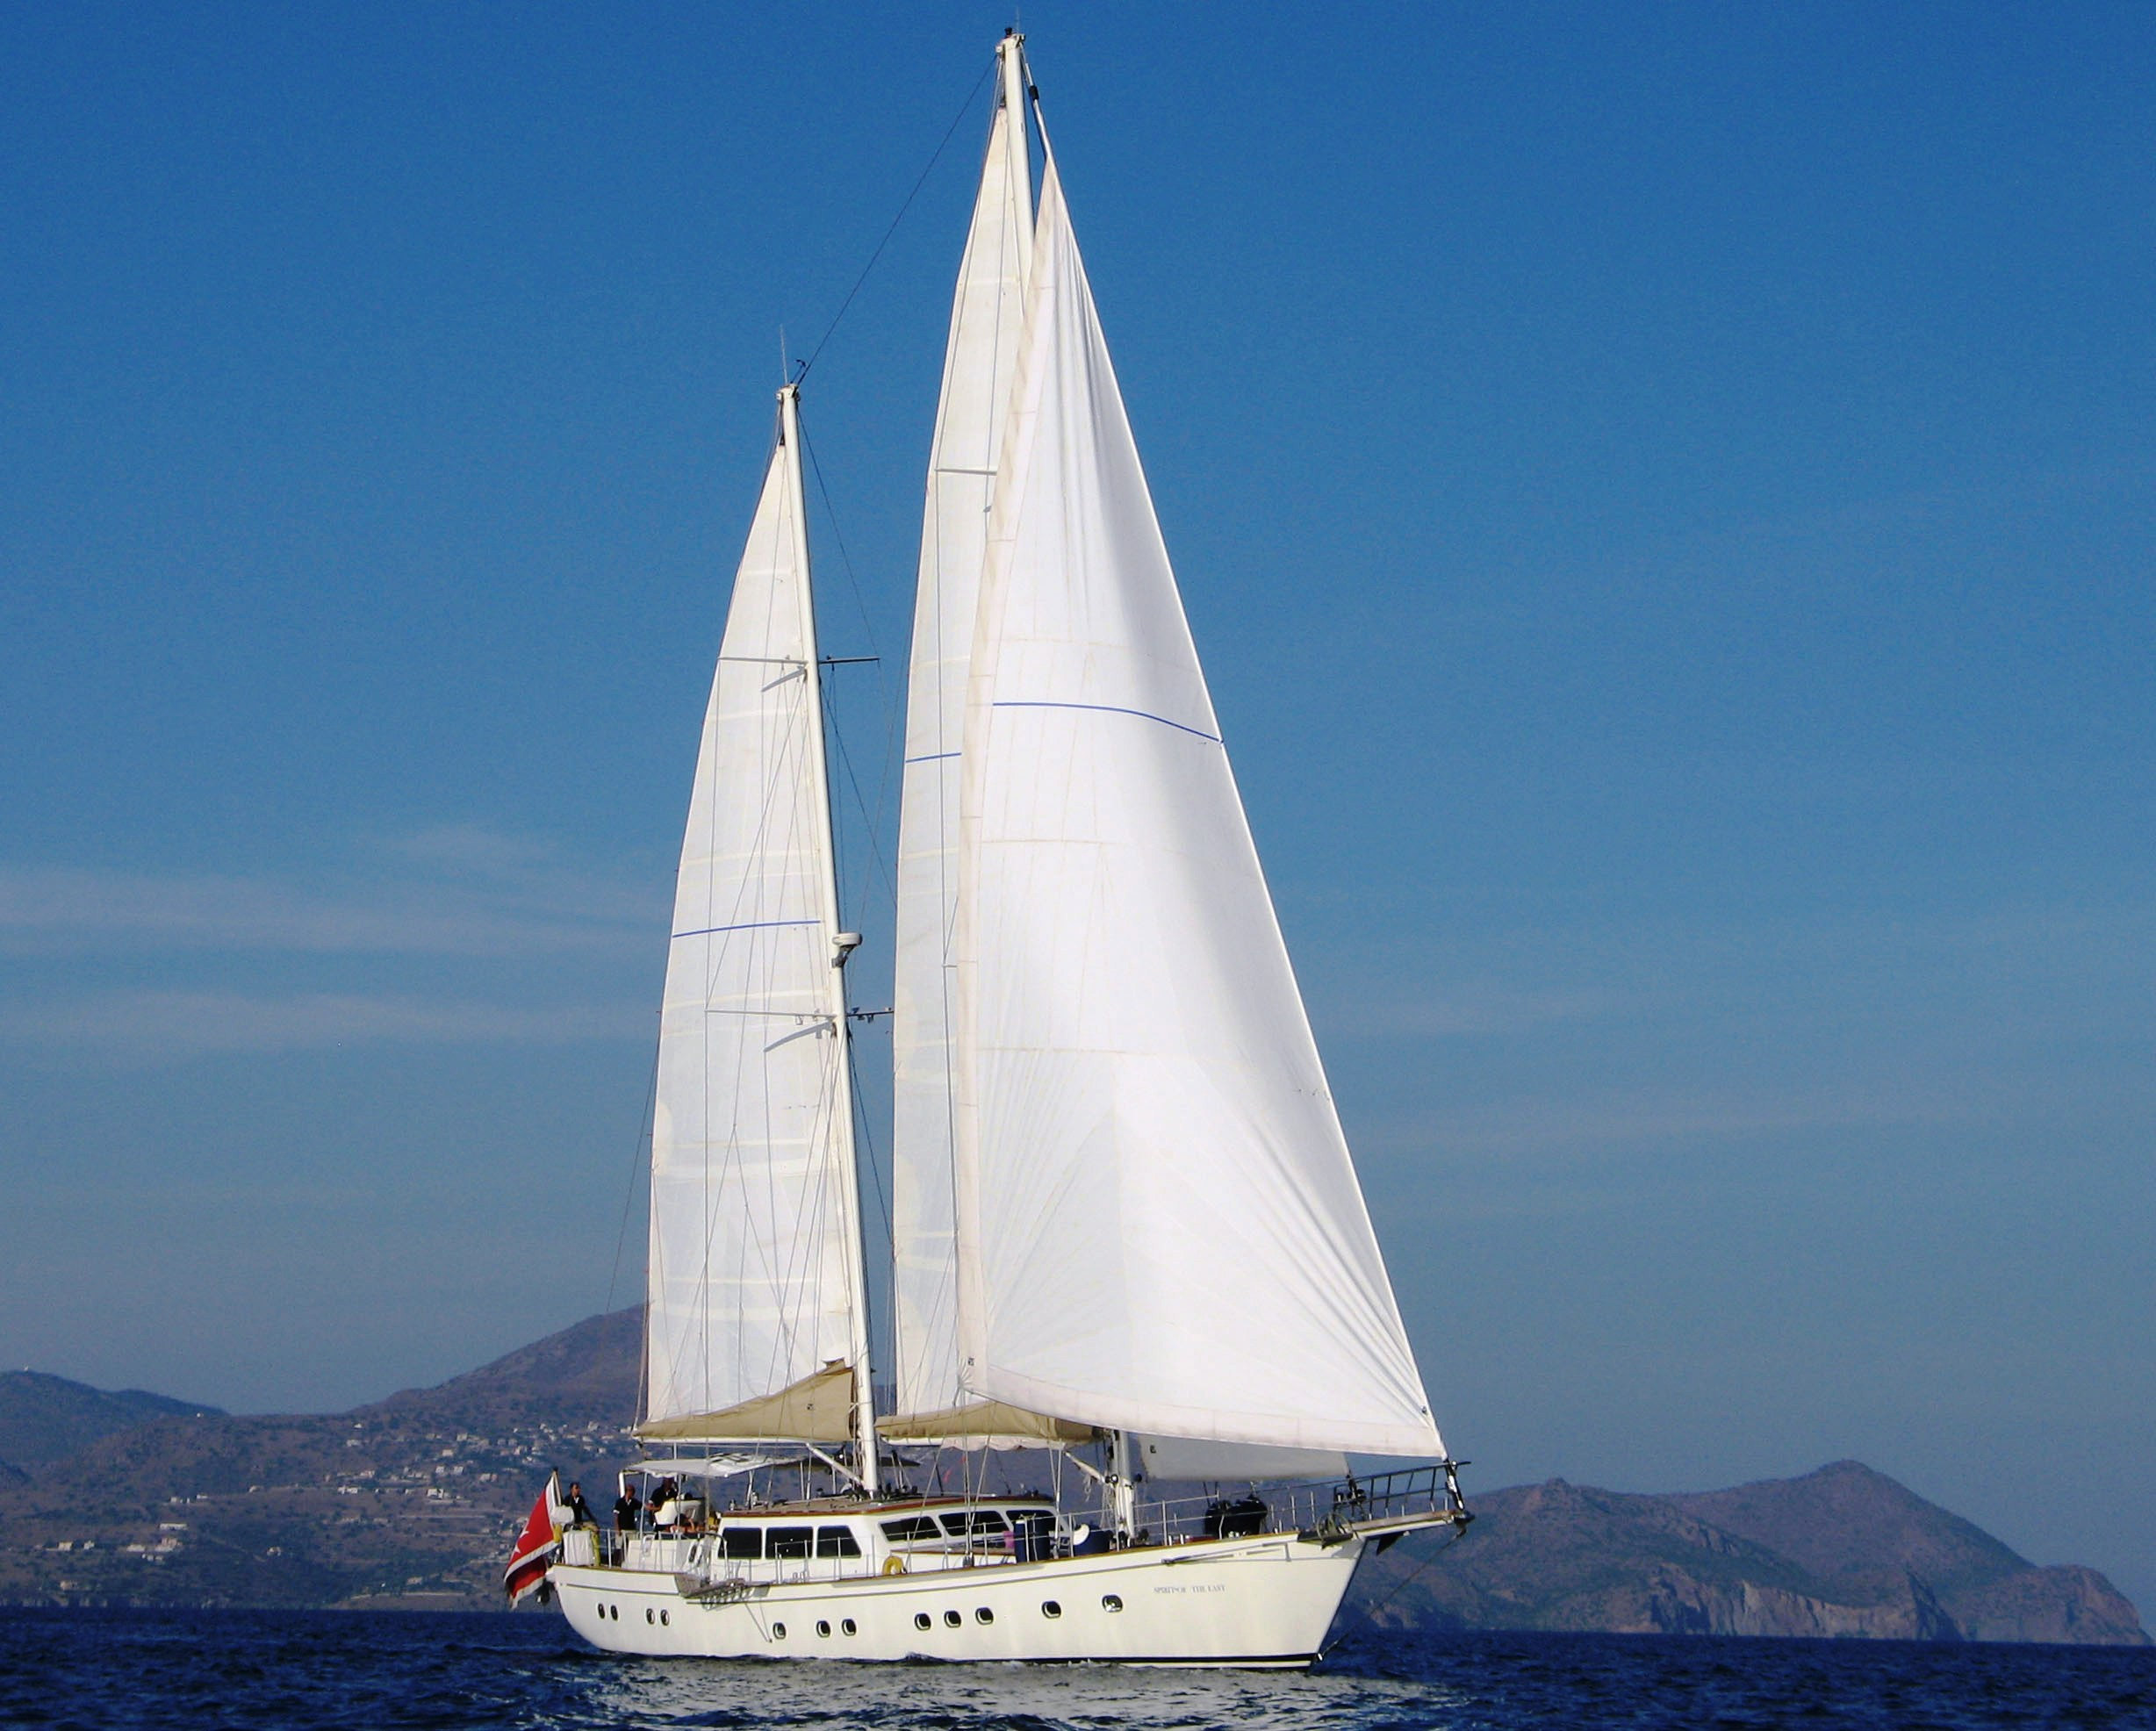 spirit of the east yacht charter details  aegean yacht services